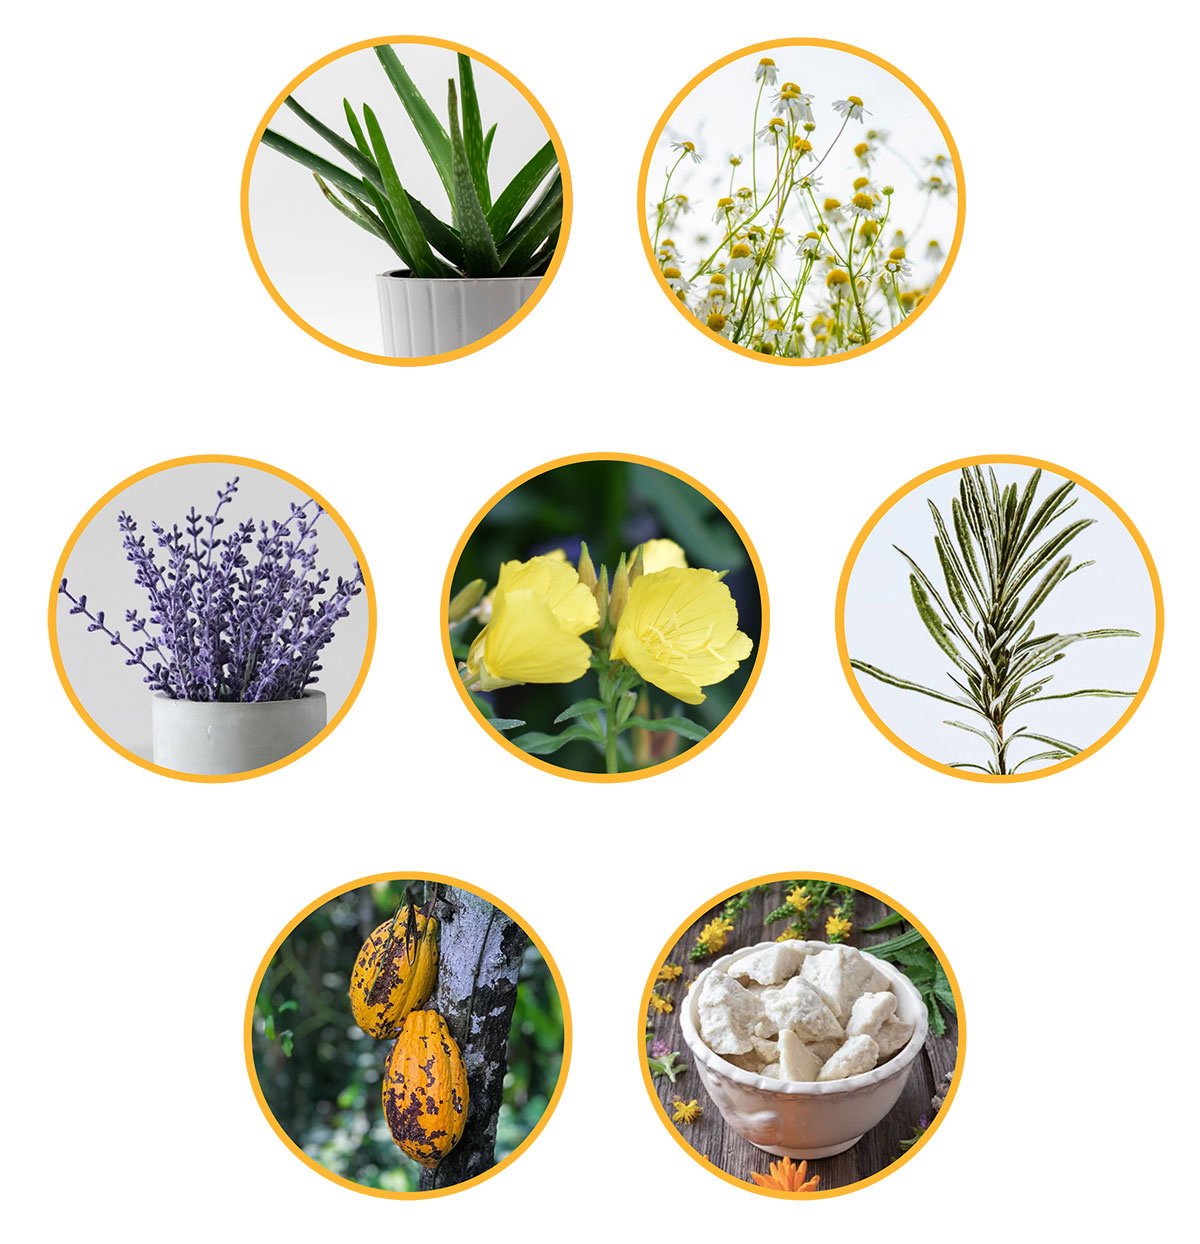 Active Ingredients - Aloe, Chamomile, Lavendar, Evening Promrose, Rosemary, Cocoa Seed Butter, Shea Butter